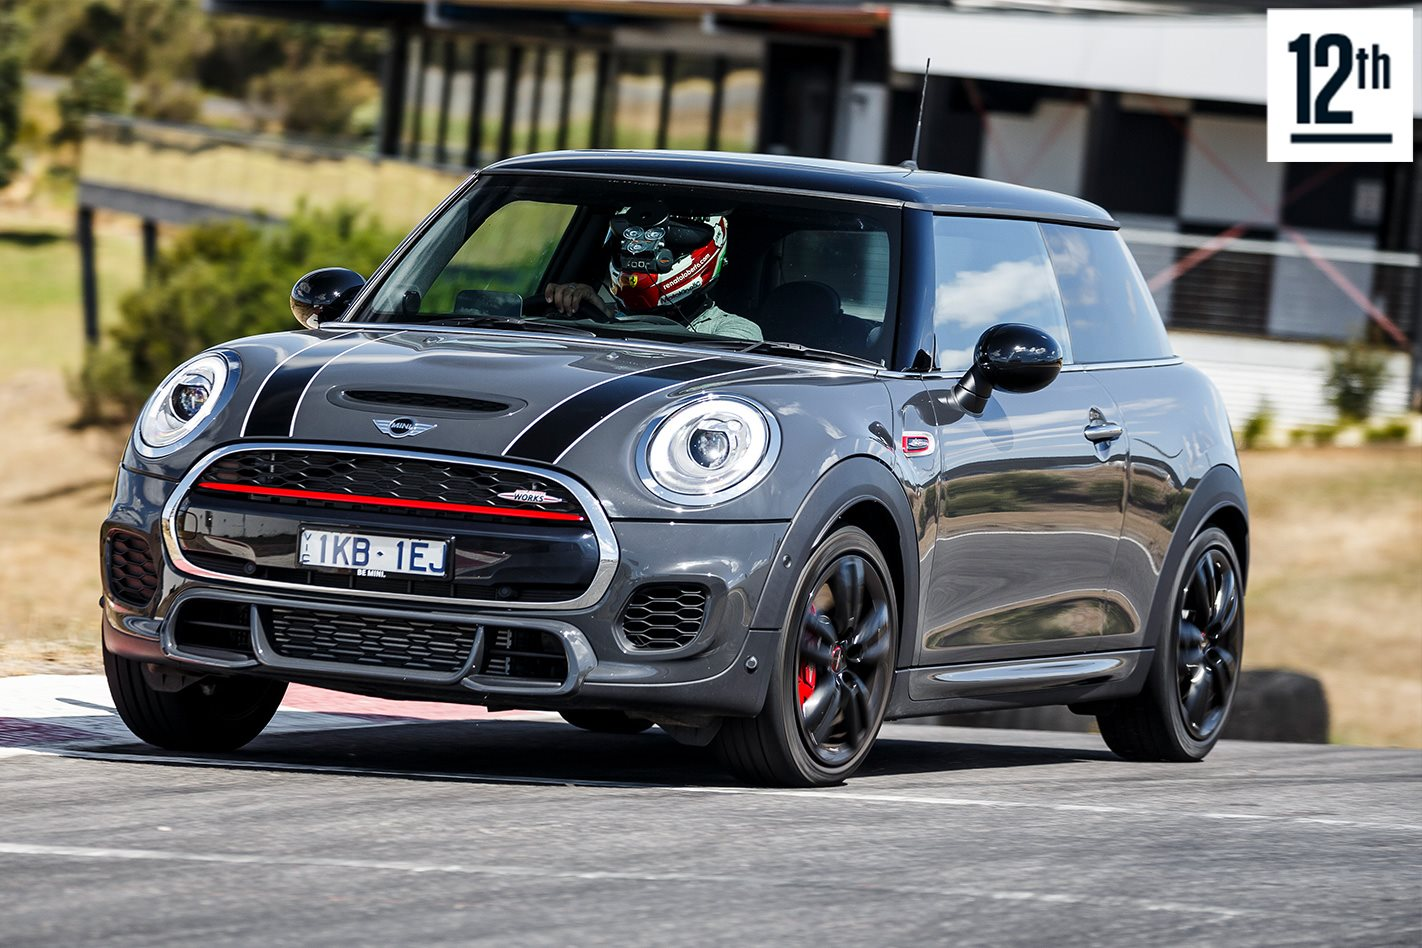 2018 Mini Cooper S Jcw Hot Hatch Megatest 12th